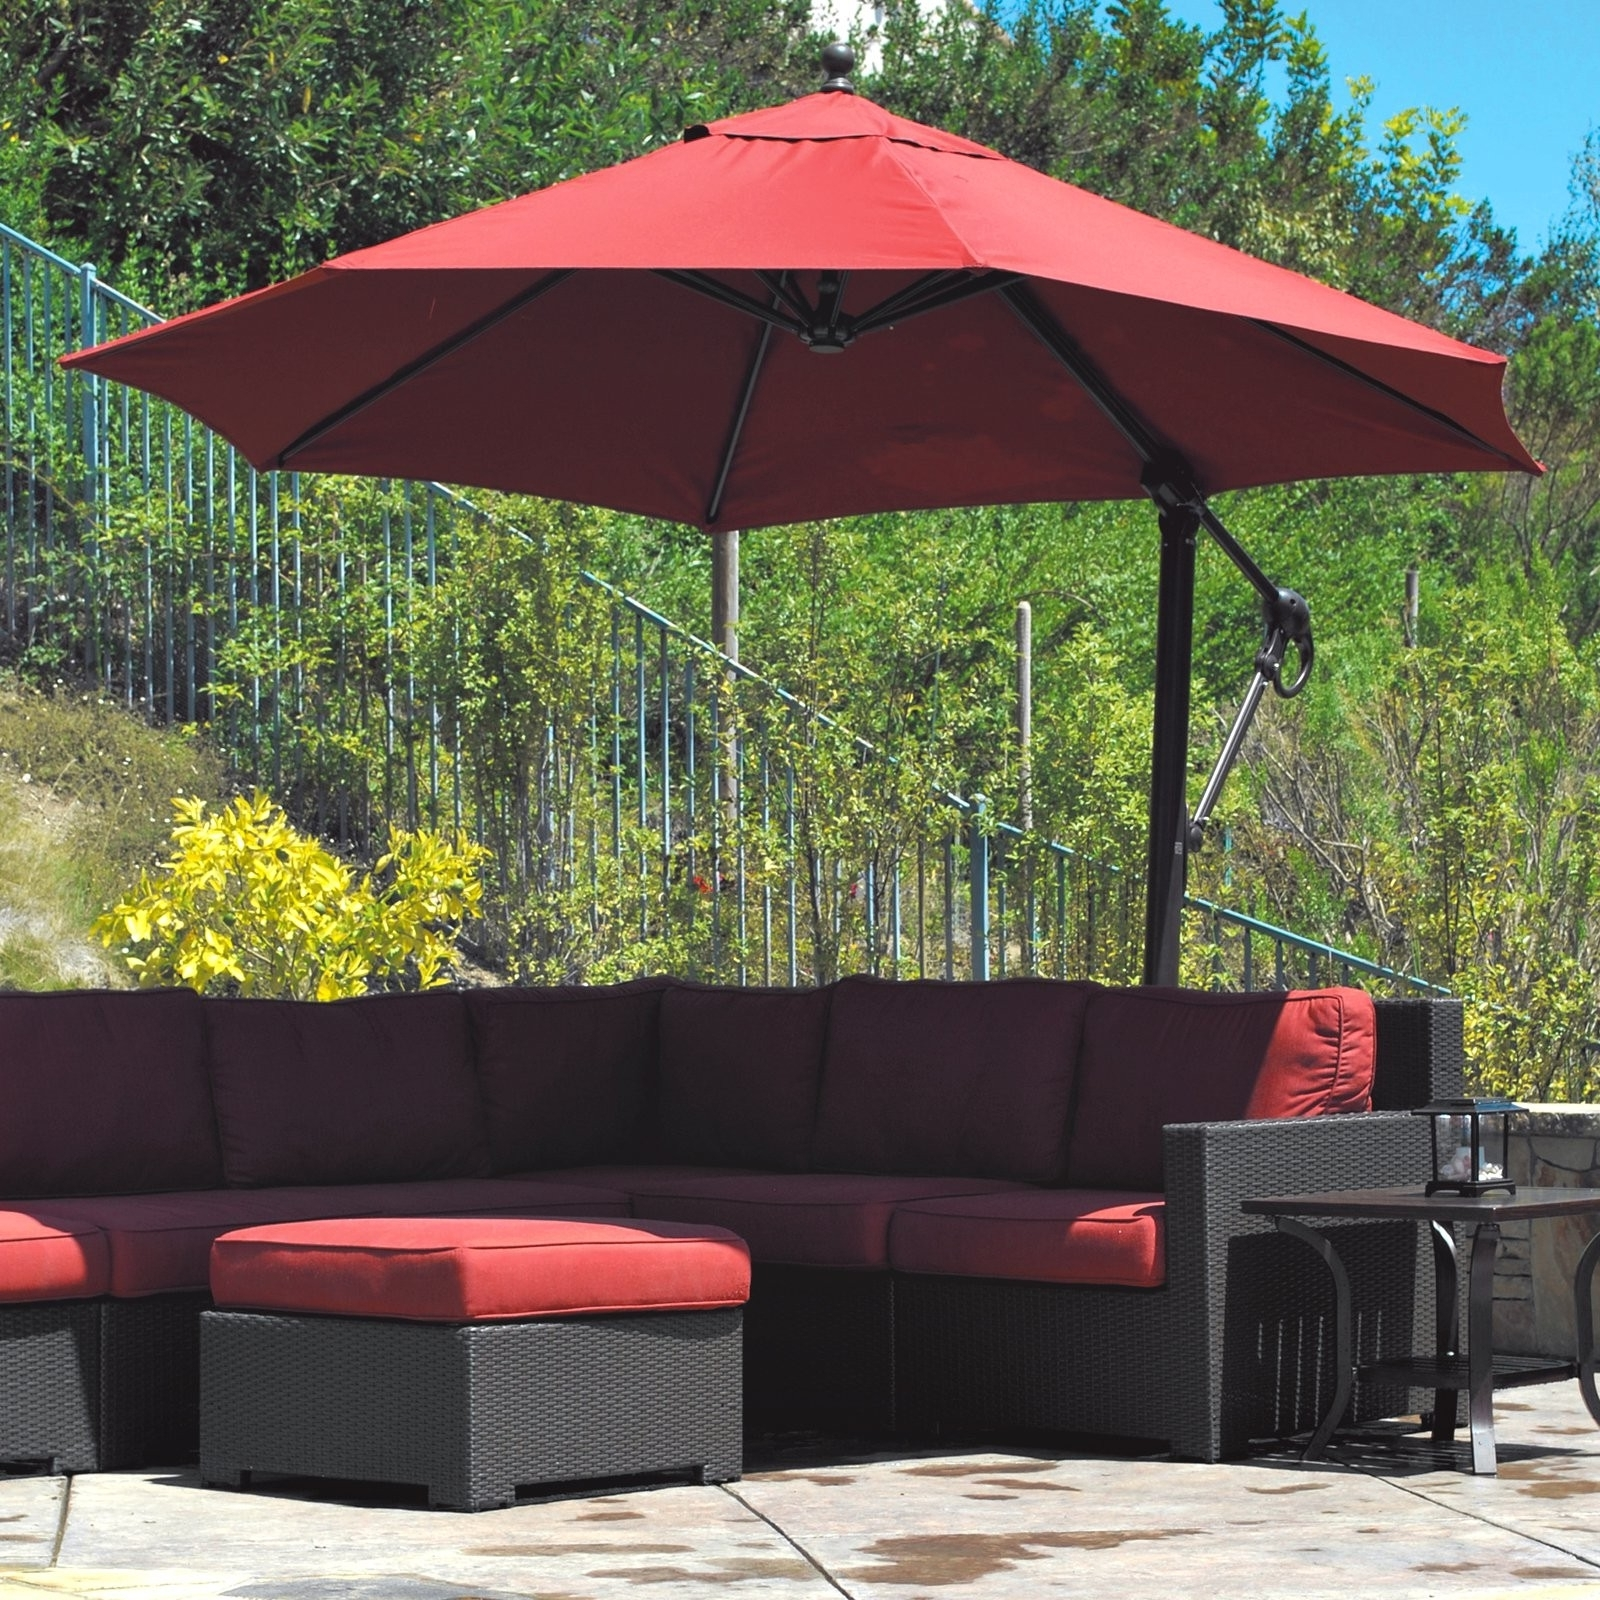 Red Sunbrella Patio Umbrellas Inside Most Recent Sunbrella Patio Umbrella Lovely Outdoor Ft Patio Umbrella Outdoor (Gallery 7 of 20)